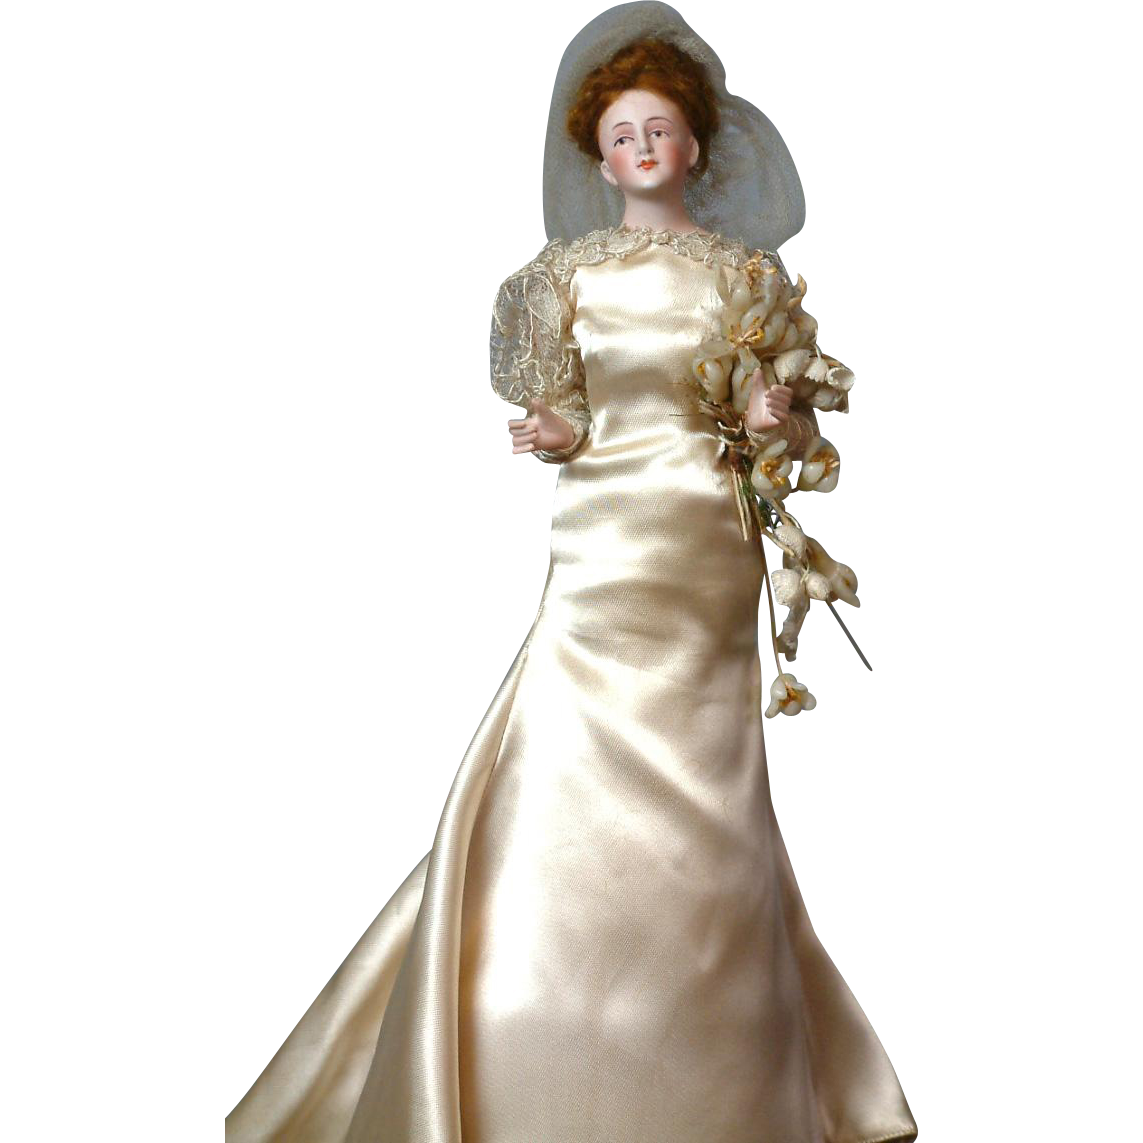 """11.5""""  All Original Bisque Half-Doll Bride With Jointed Arms with Wax Flower Bouquet"""